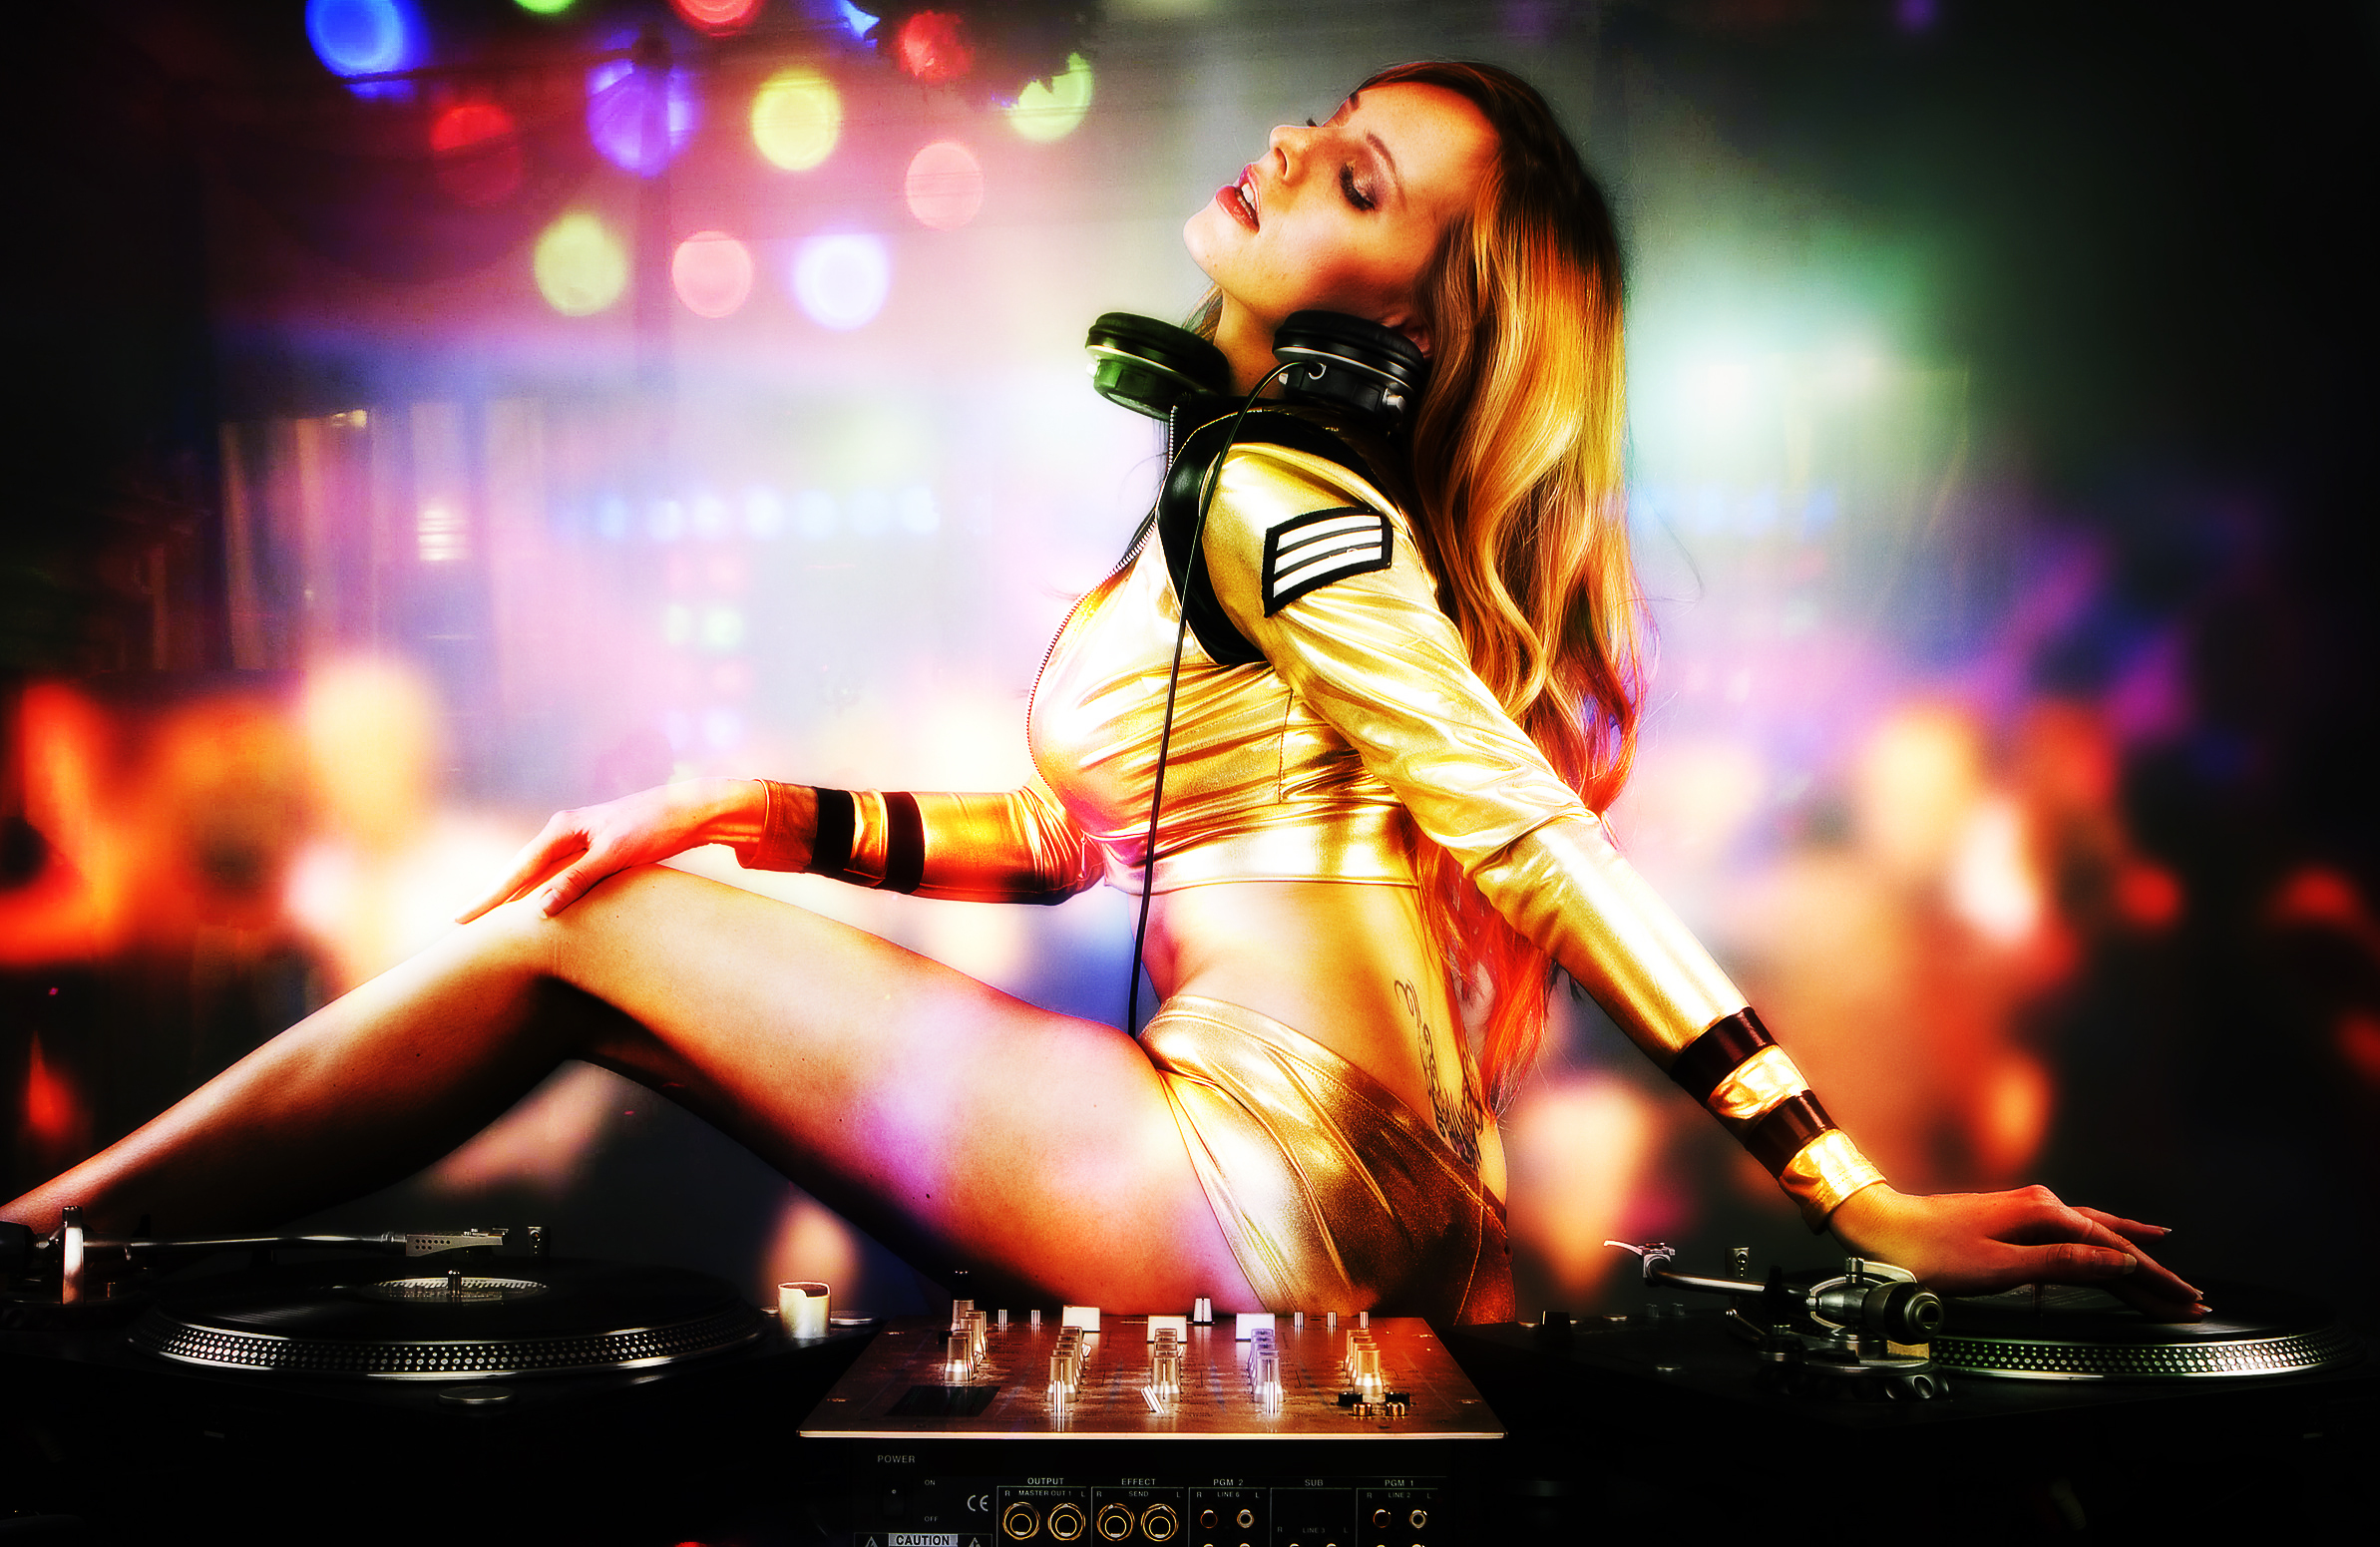 Sexy girl DJ blonde with curve on body hd 1080p 2386x1551